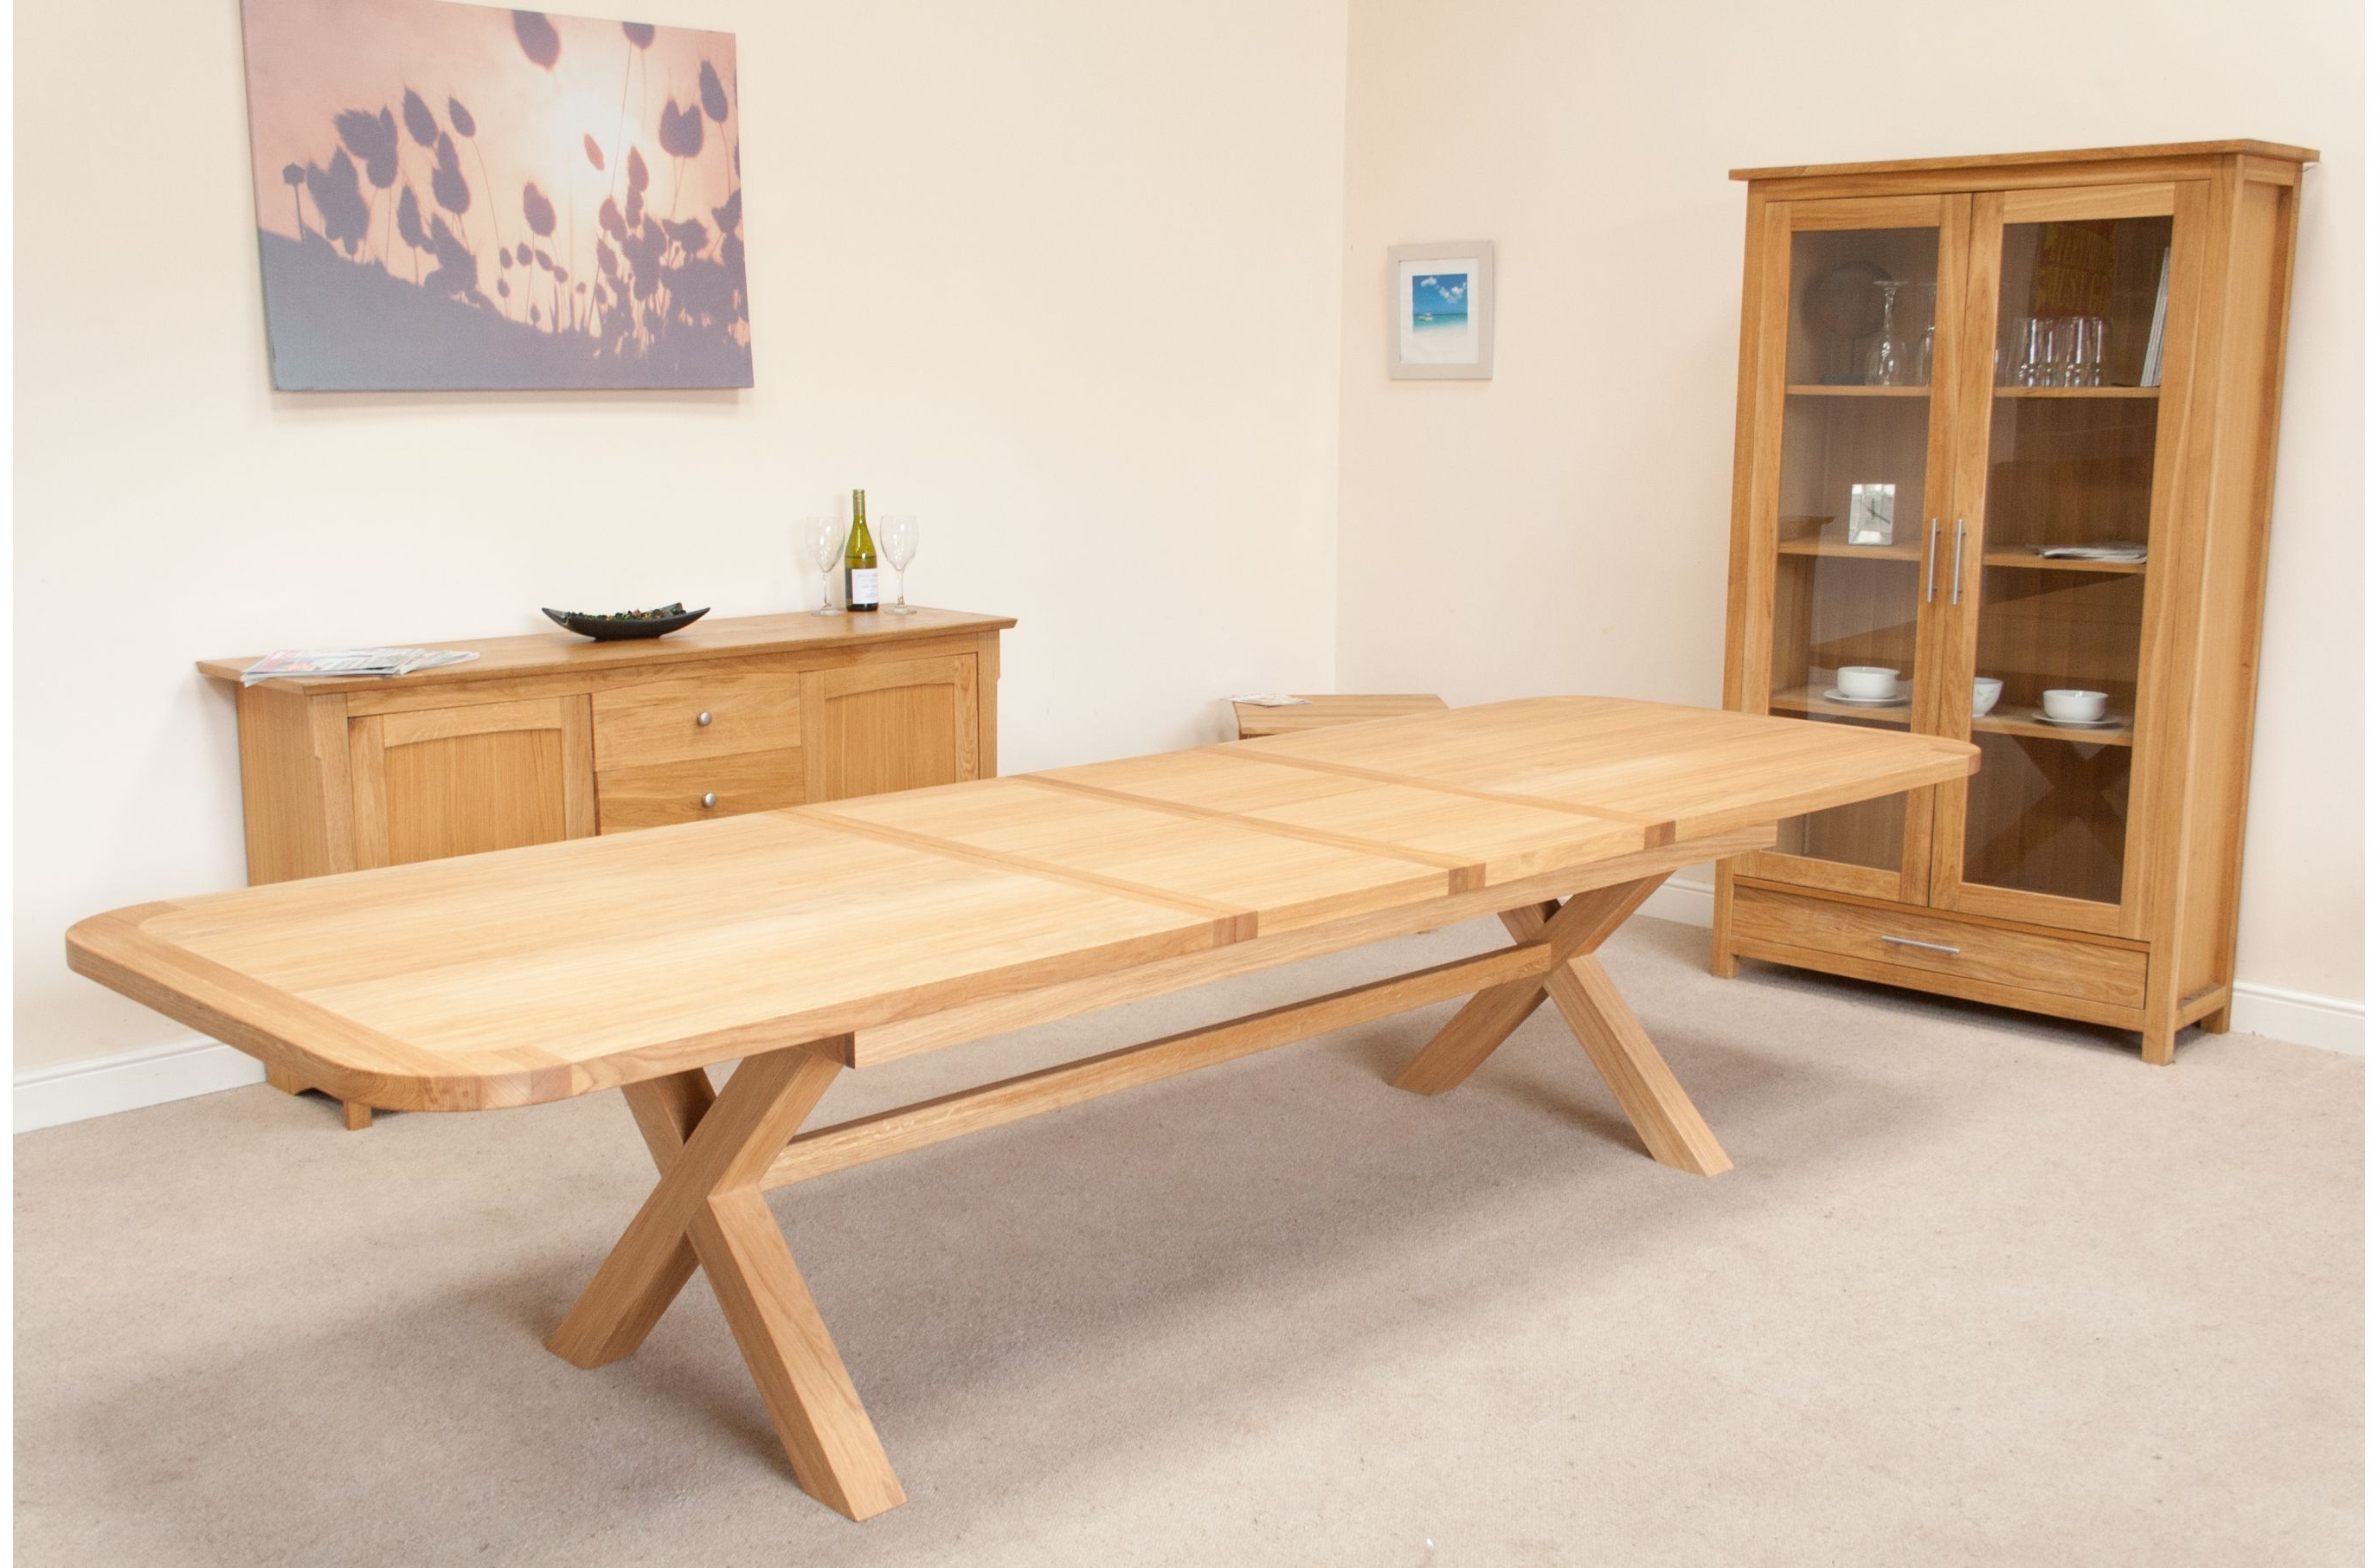 Huge Big Tables Intended For Best And Newest Extending Oak Dining Tables And Chairs (View 10 of 25)